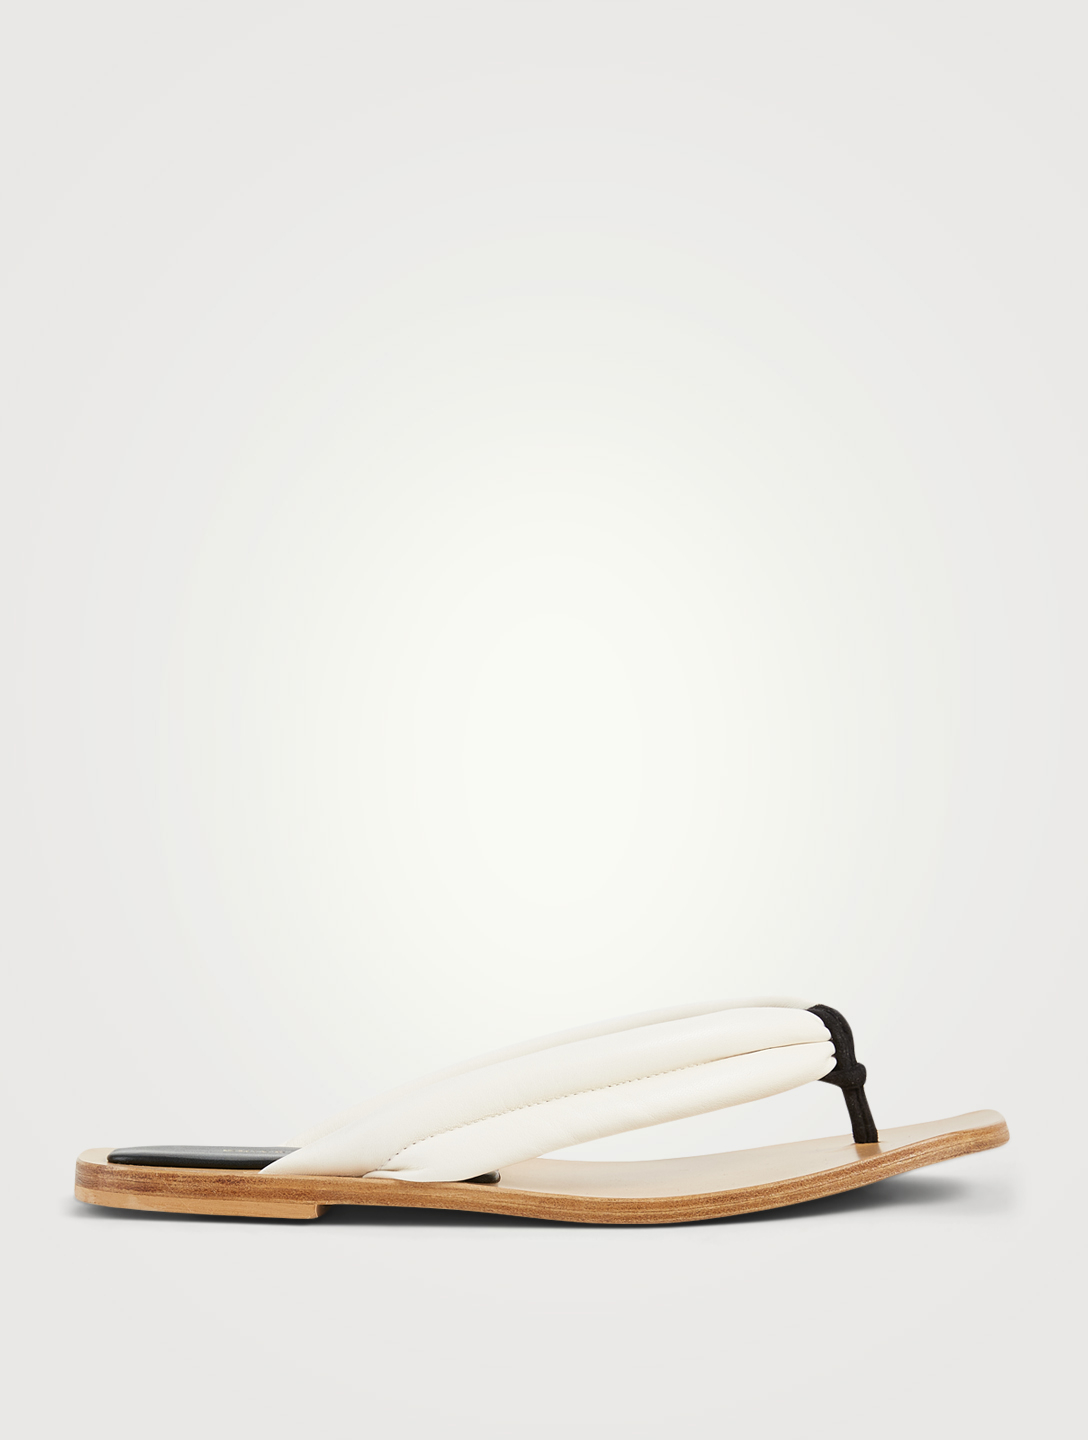 DRIES VAN NOTEN Leather Thong Sandals Women's White